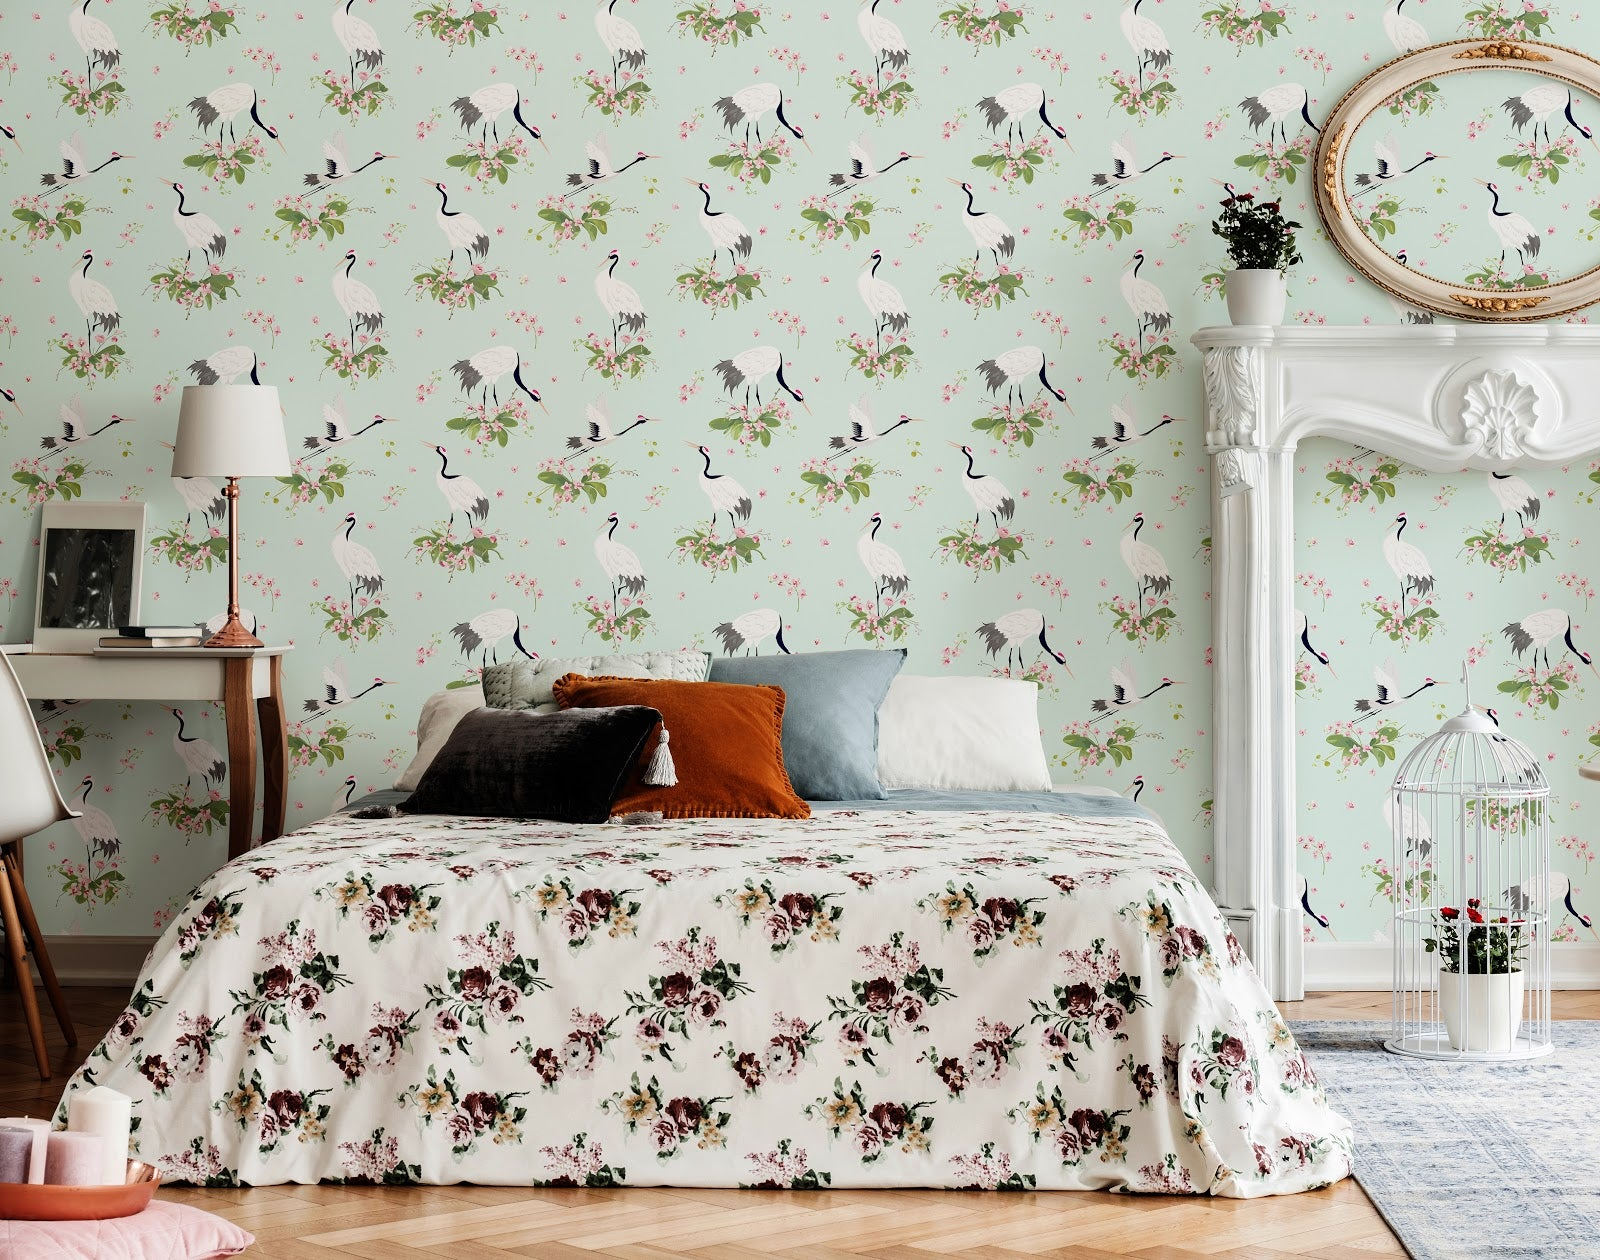 Birds feature on a vintage style romantic wallpaper for a bedroom.